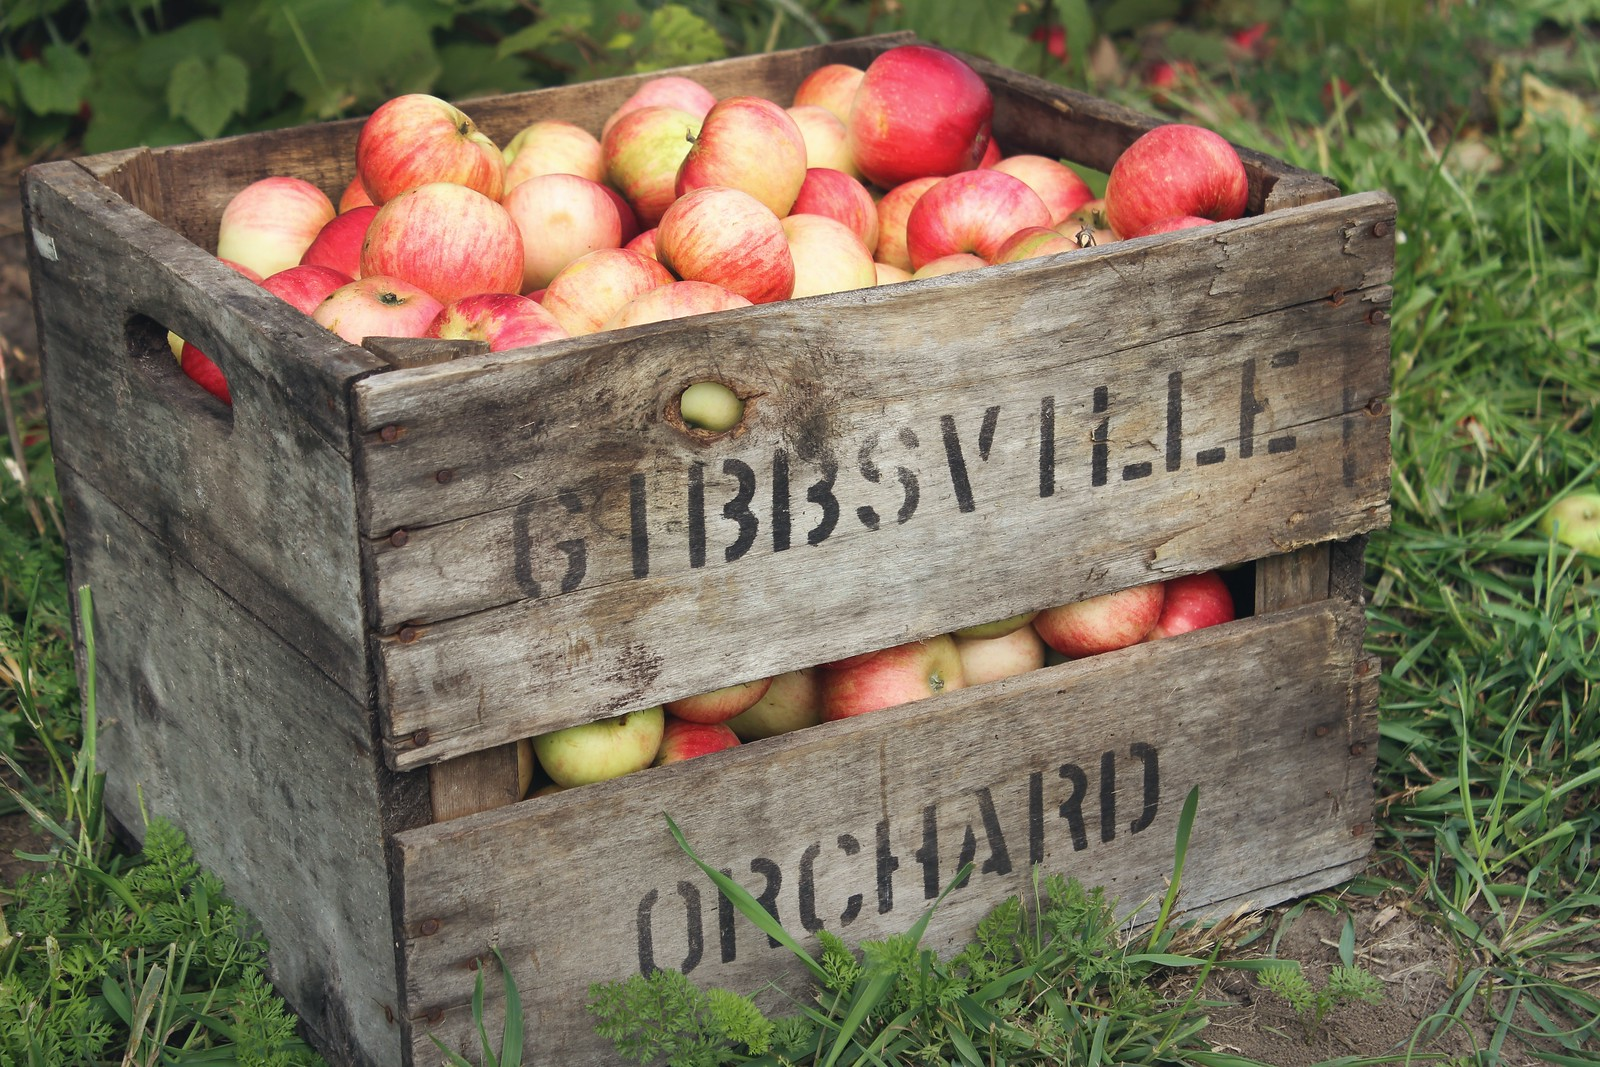 storing apples in crates